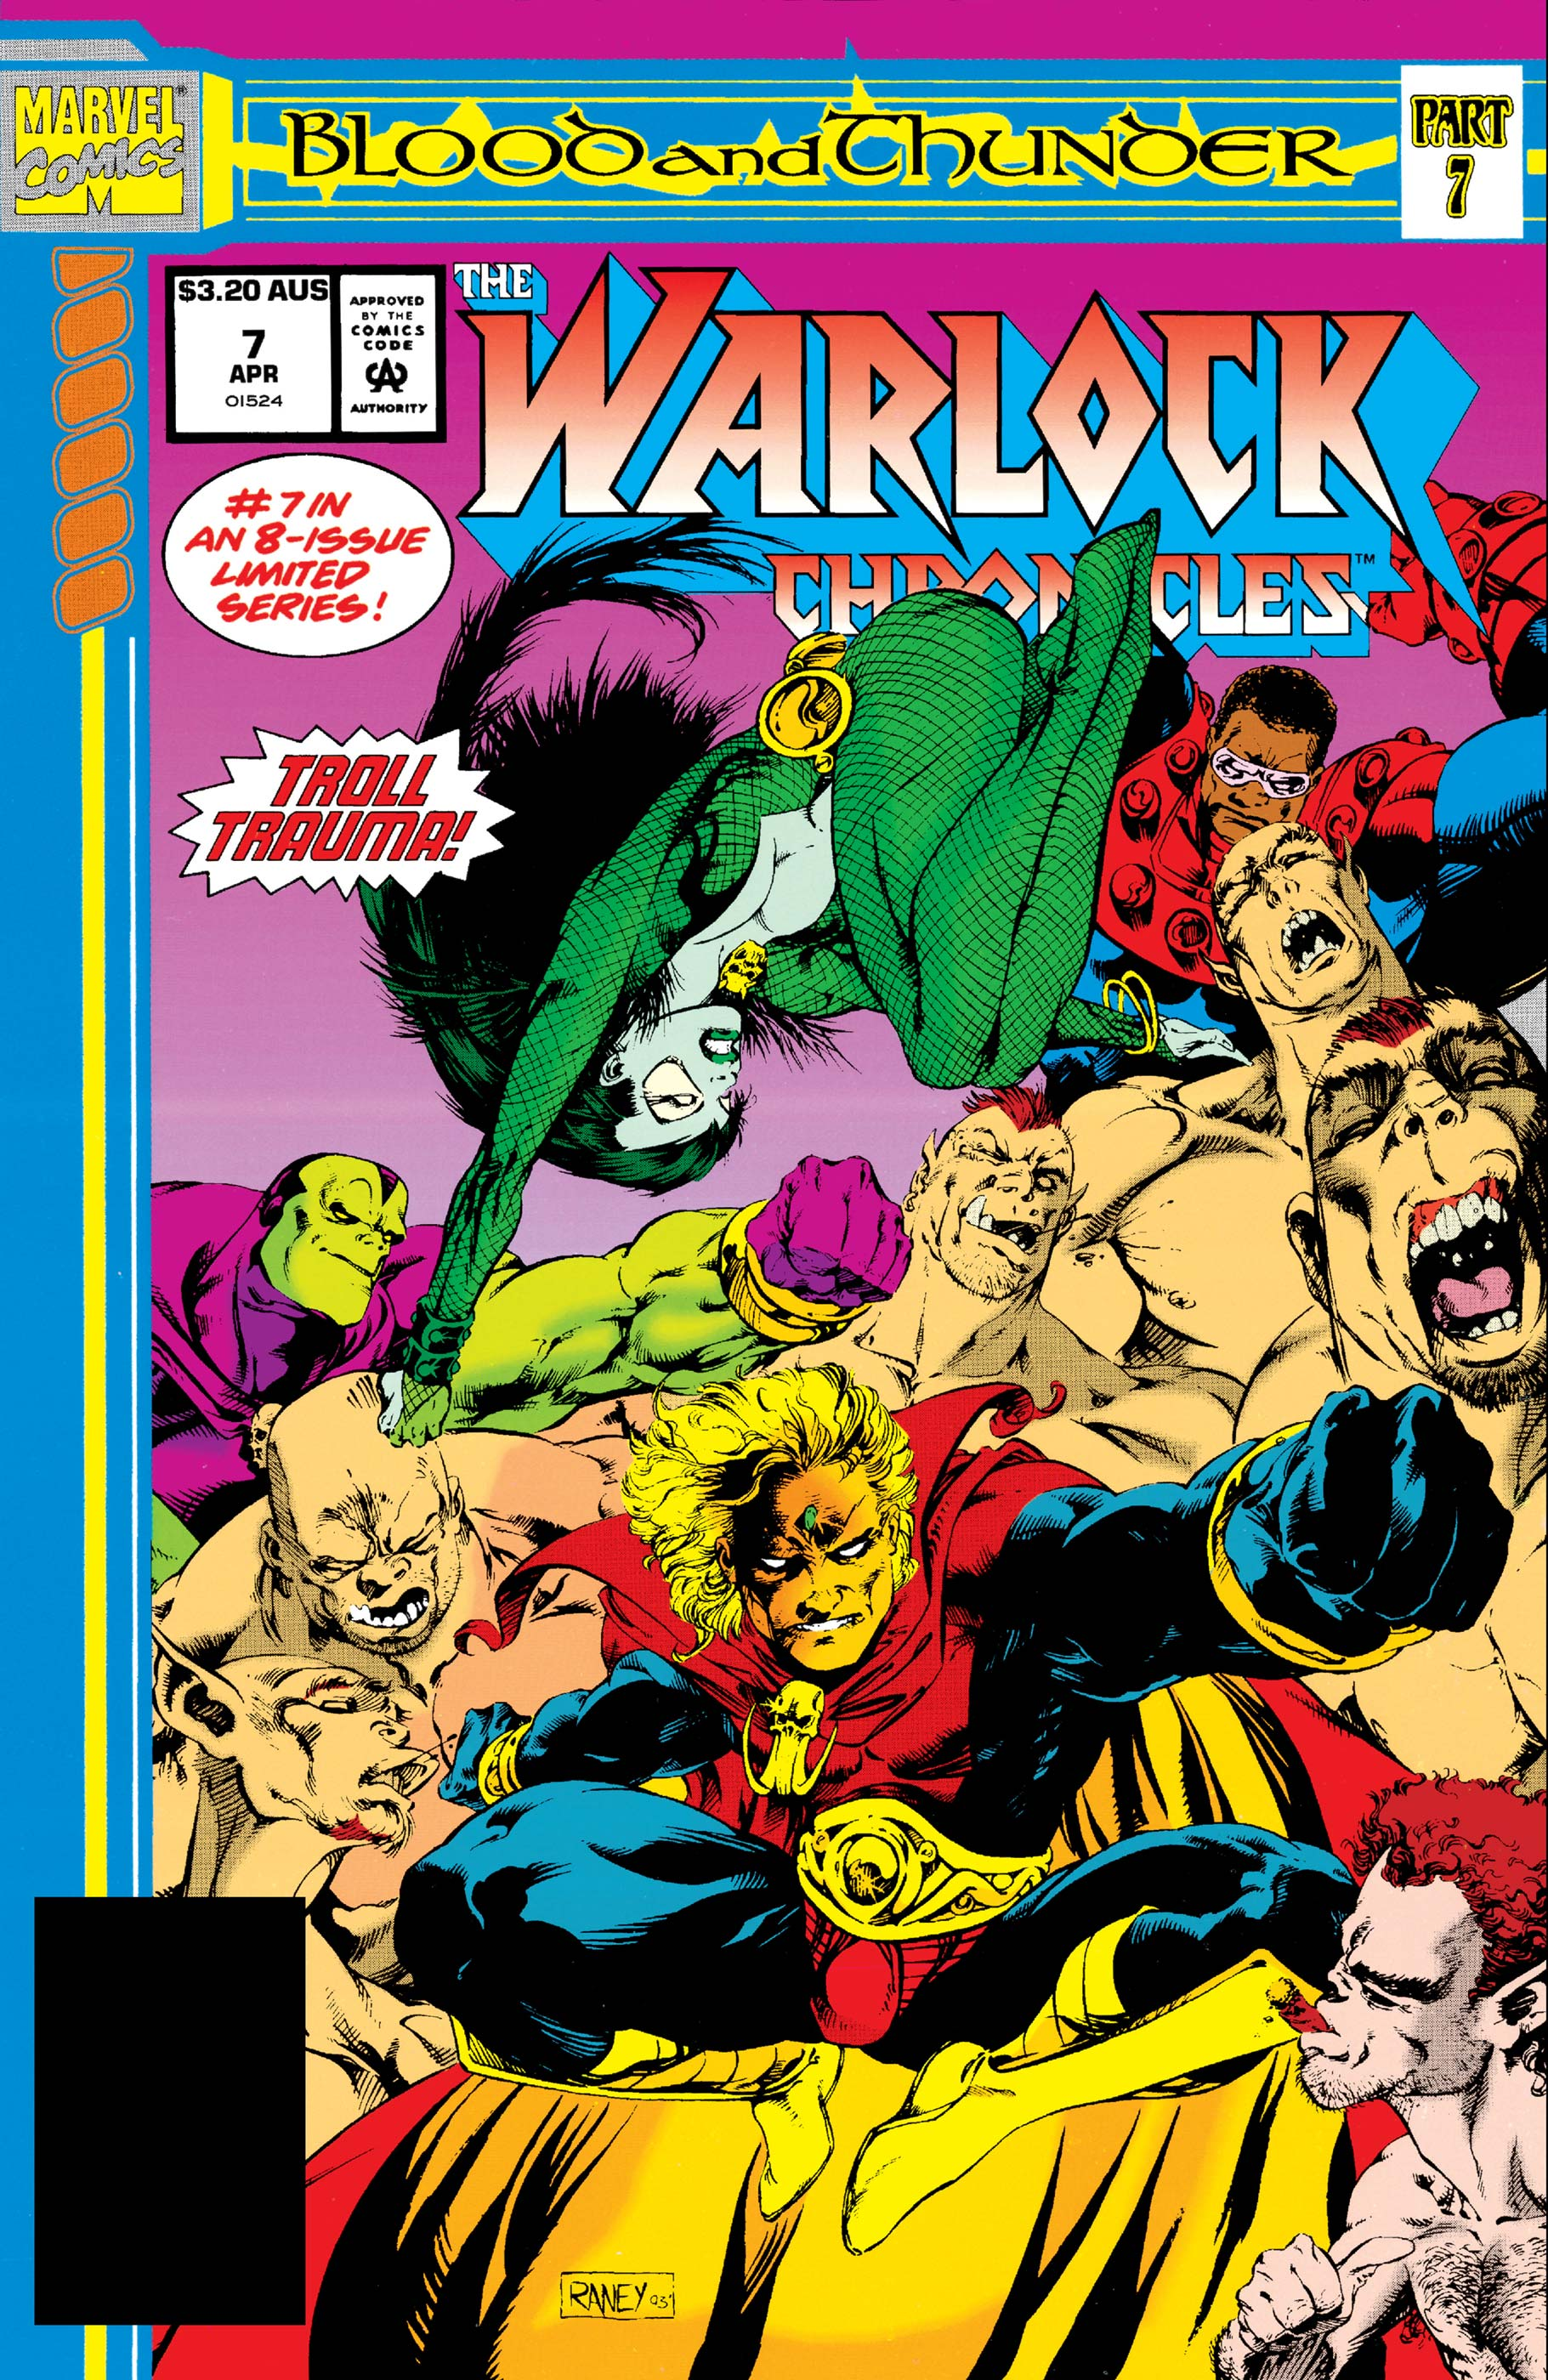 Warlock Chronicles (1993) #7